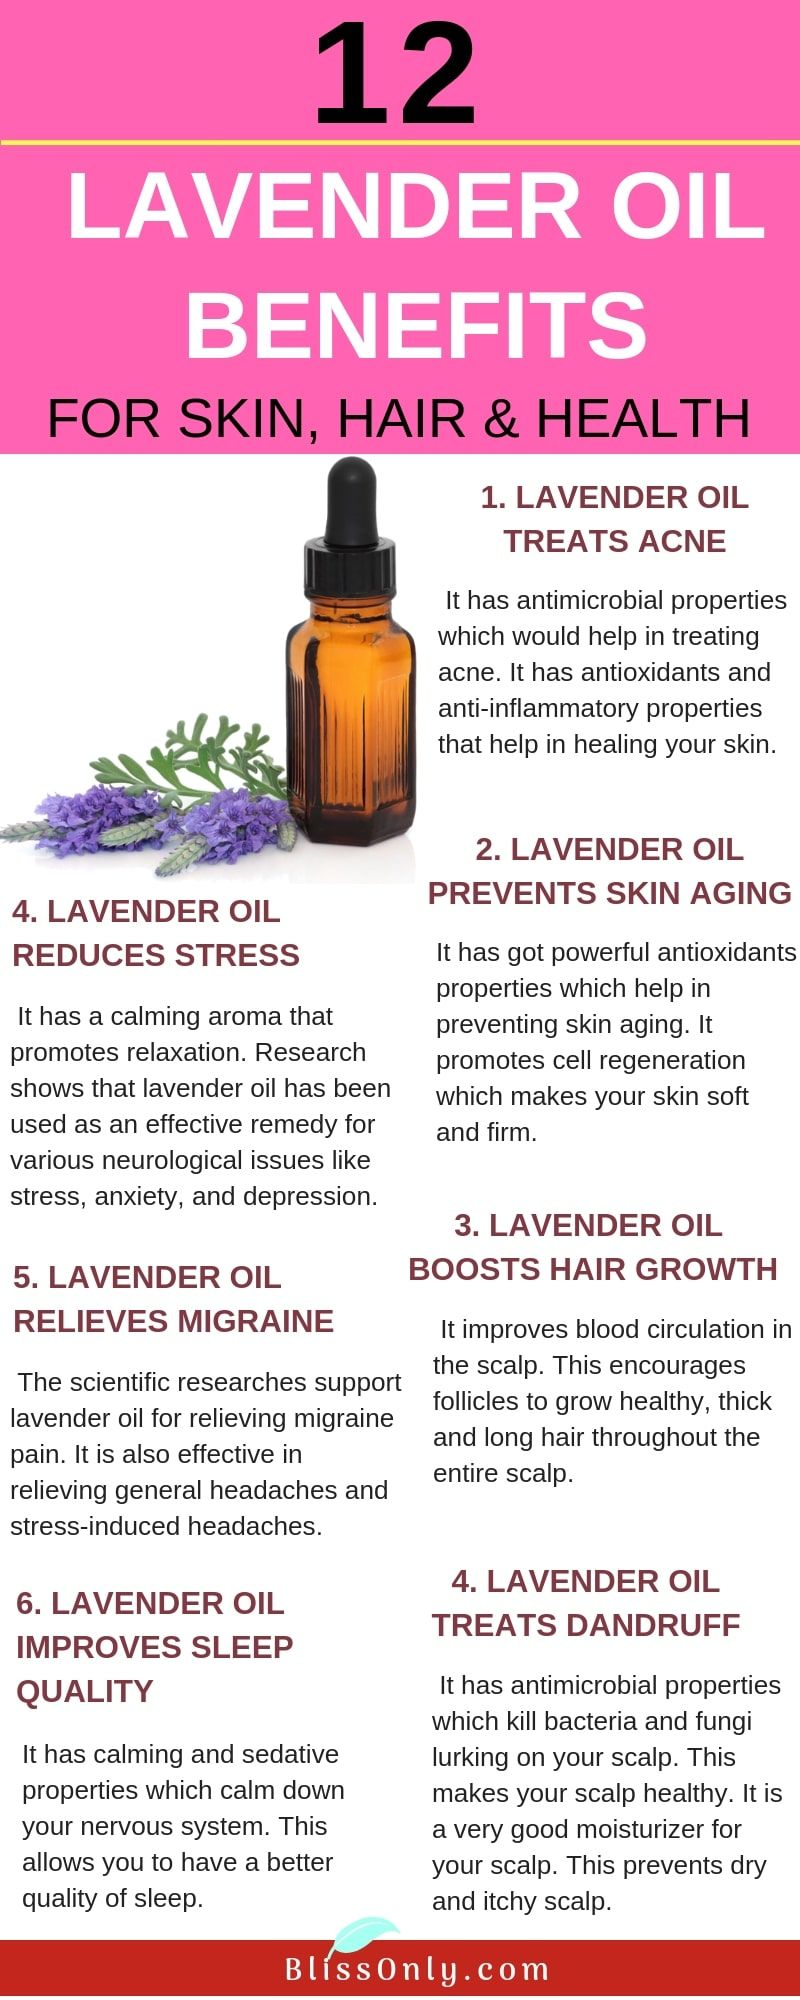 12 Lavender Oil Benefits For Skin Hair And Health In 2020 With